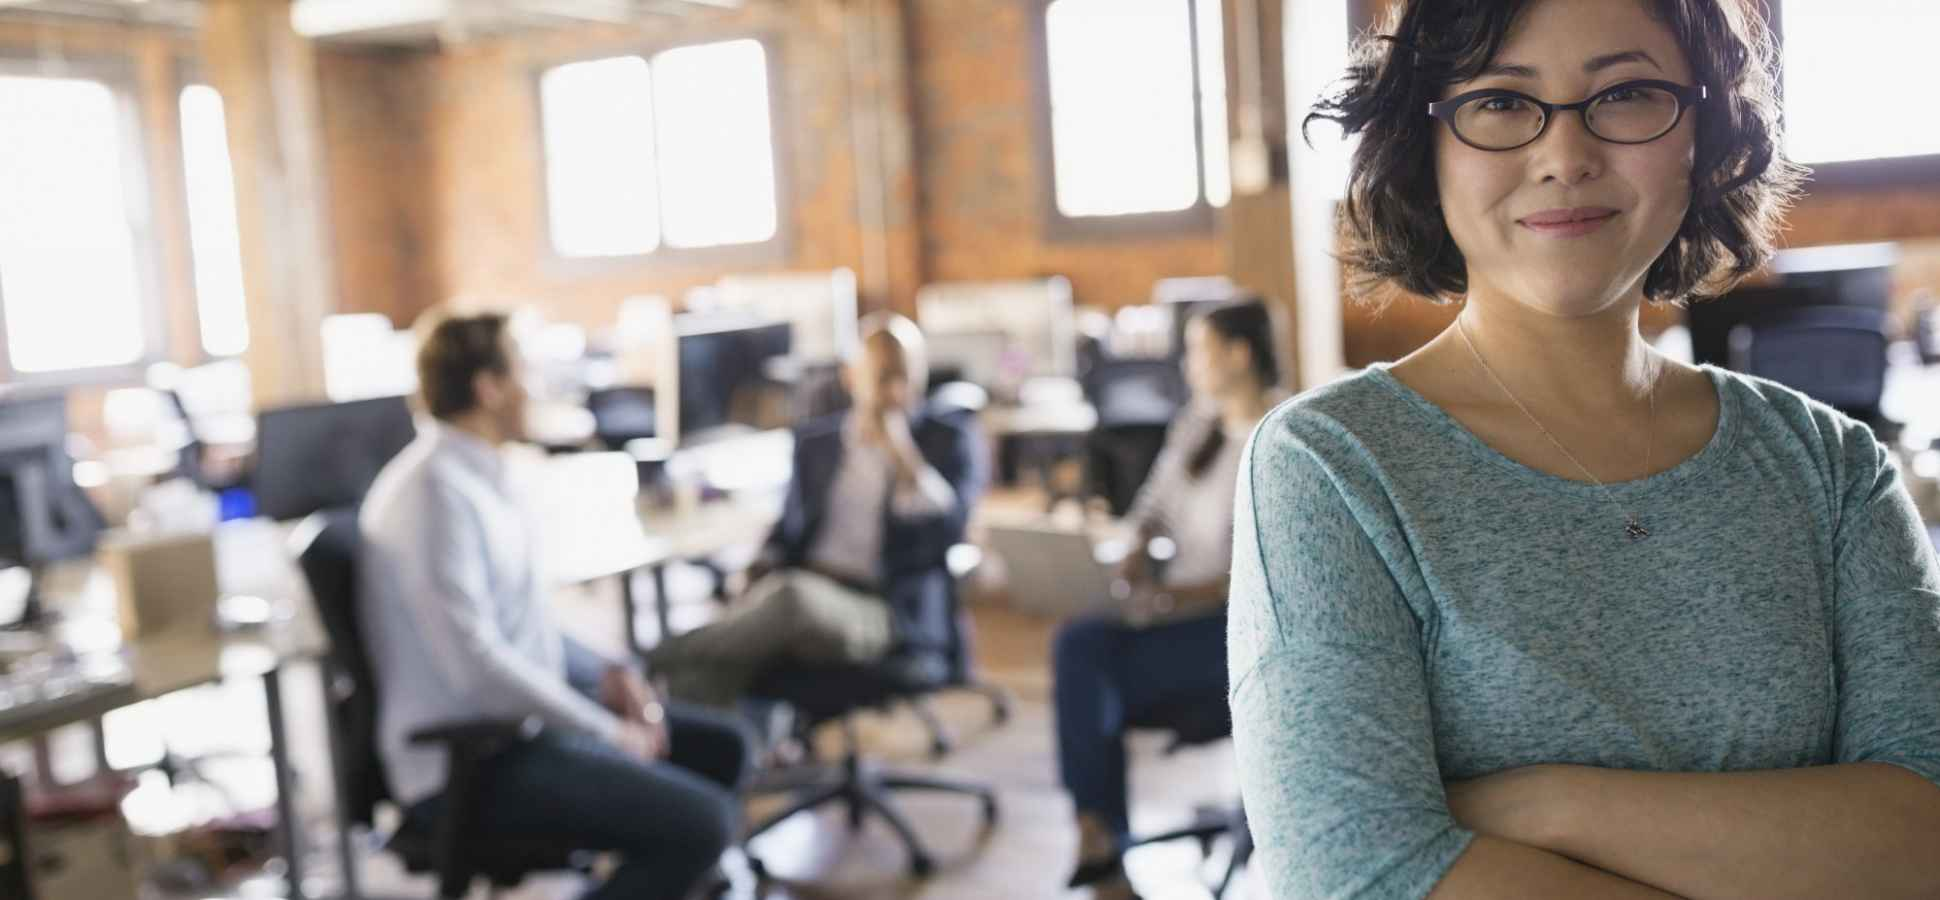 How to Make Your Boss Want to Keep You Forever